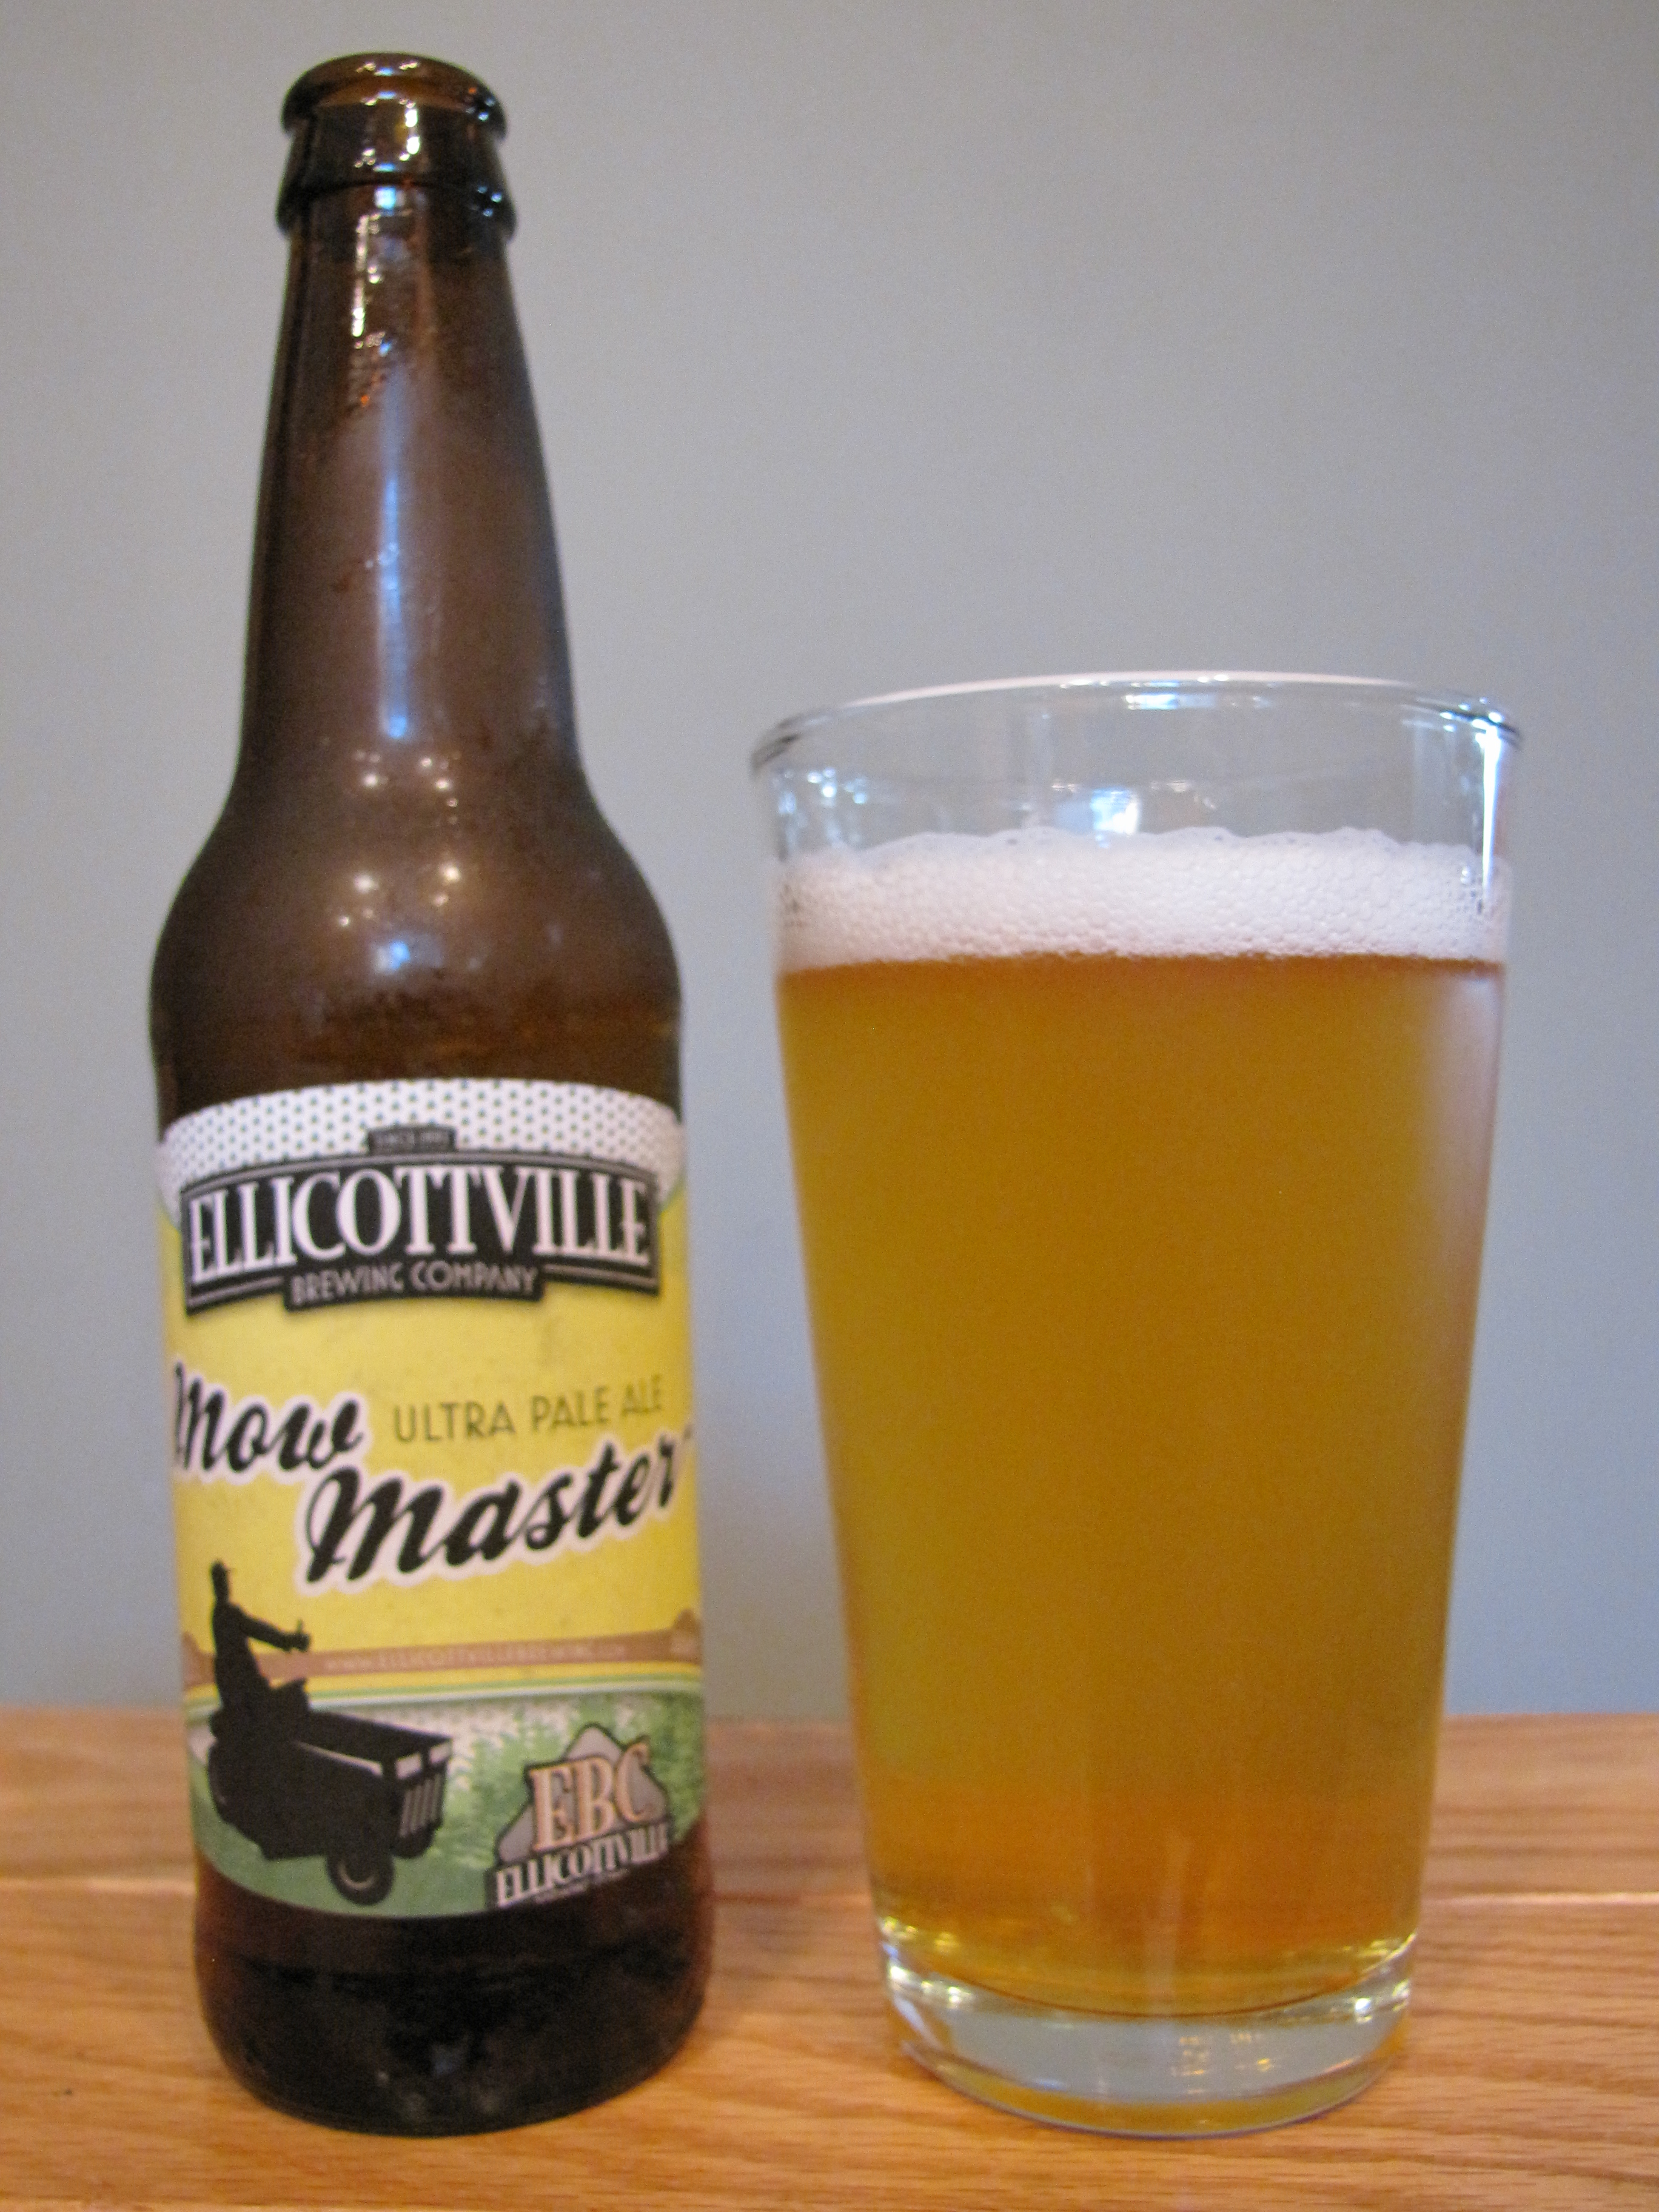 Ellicottville Mowmasters Ultra Pale Ale